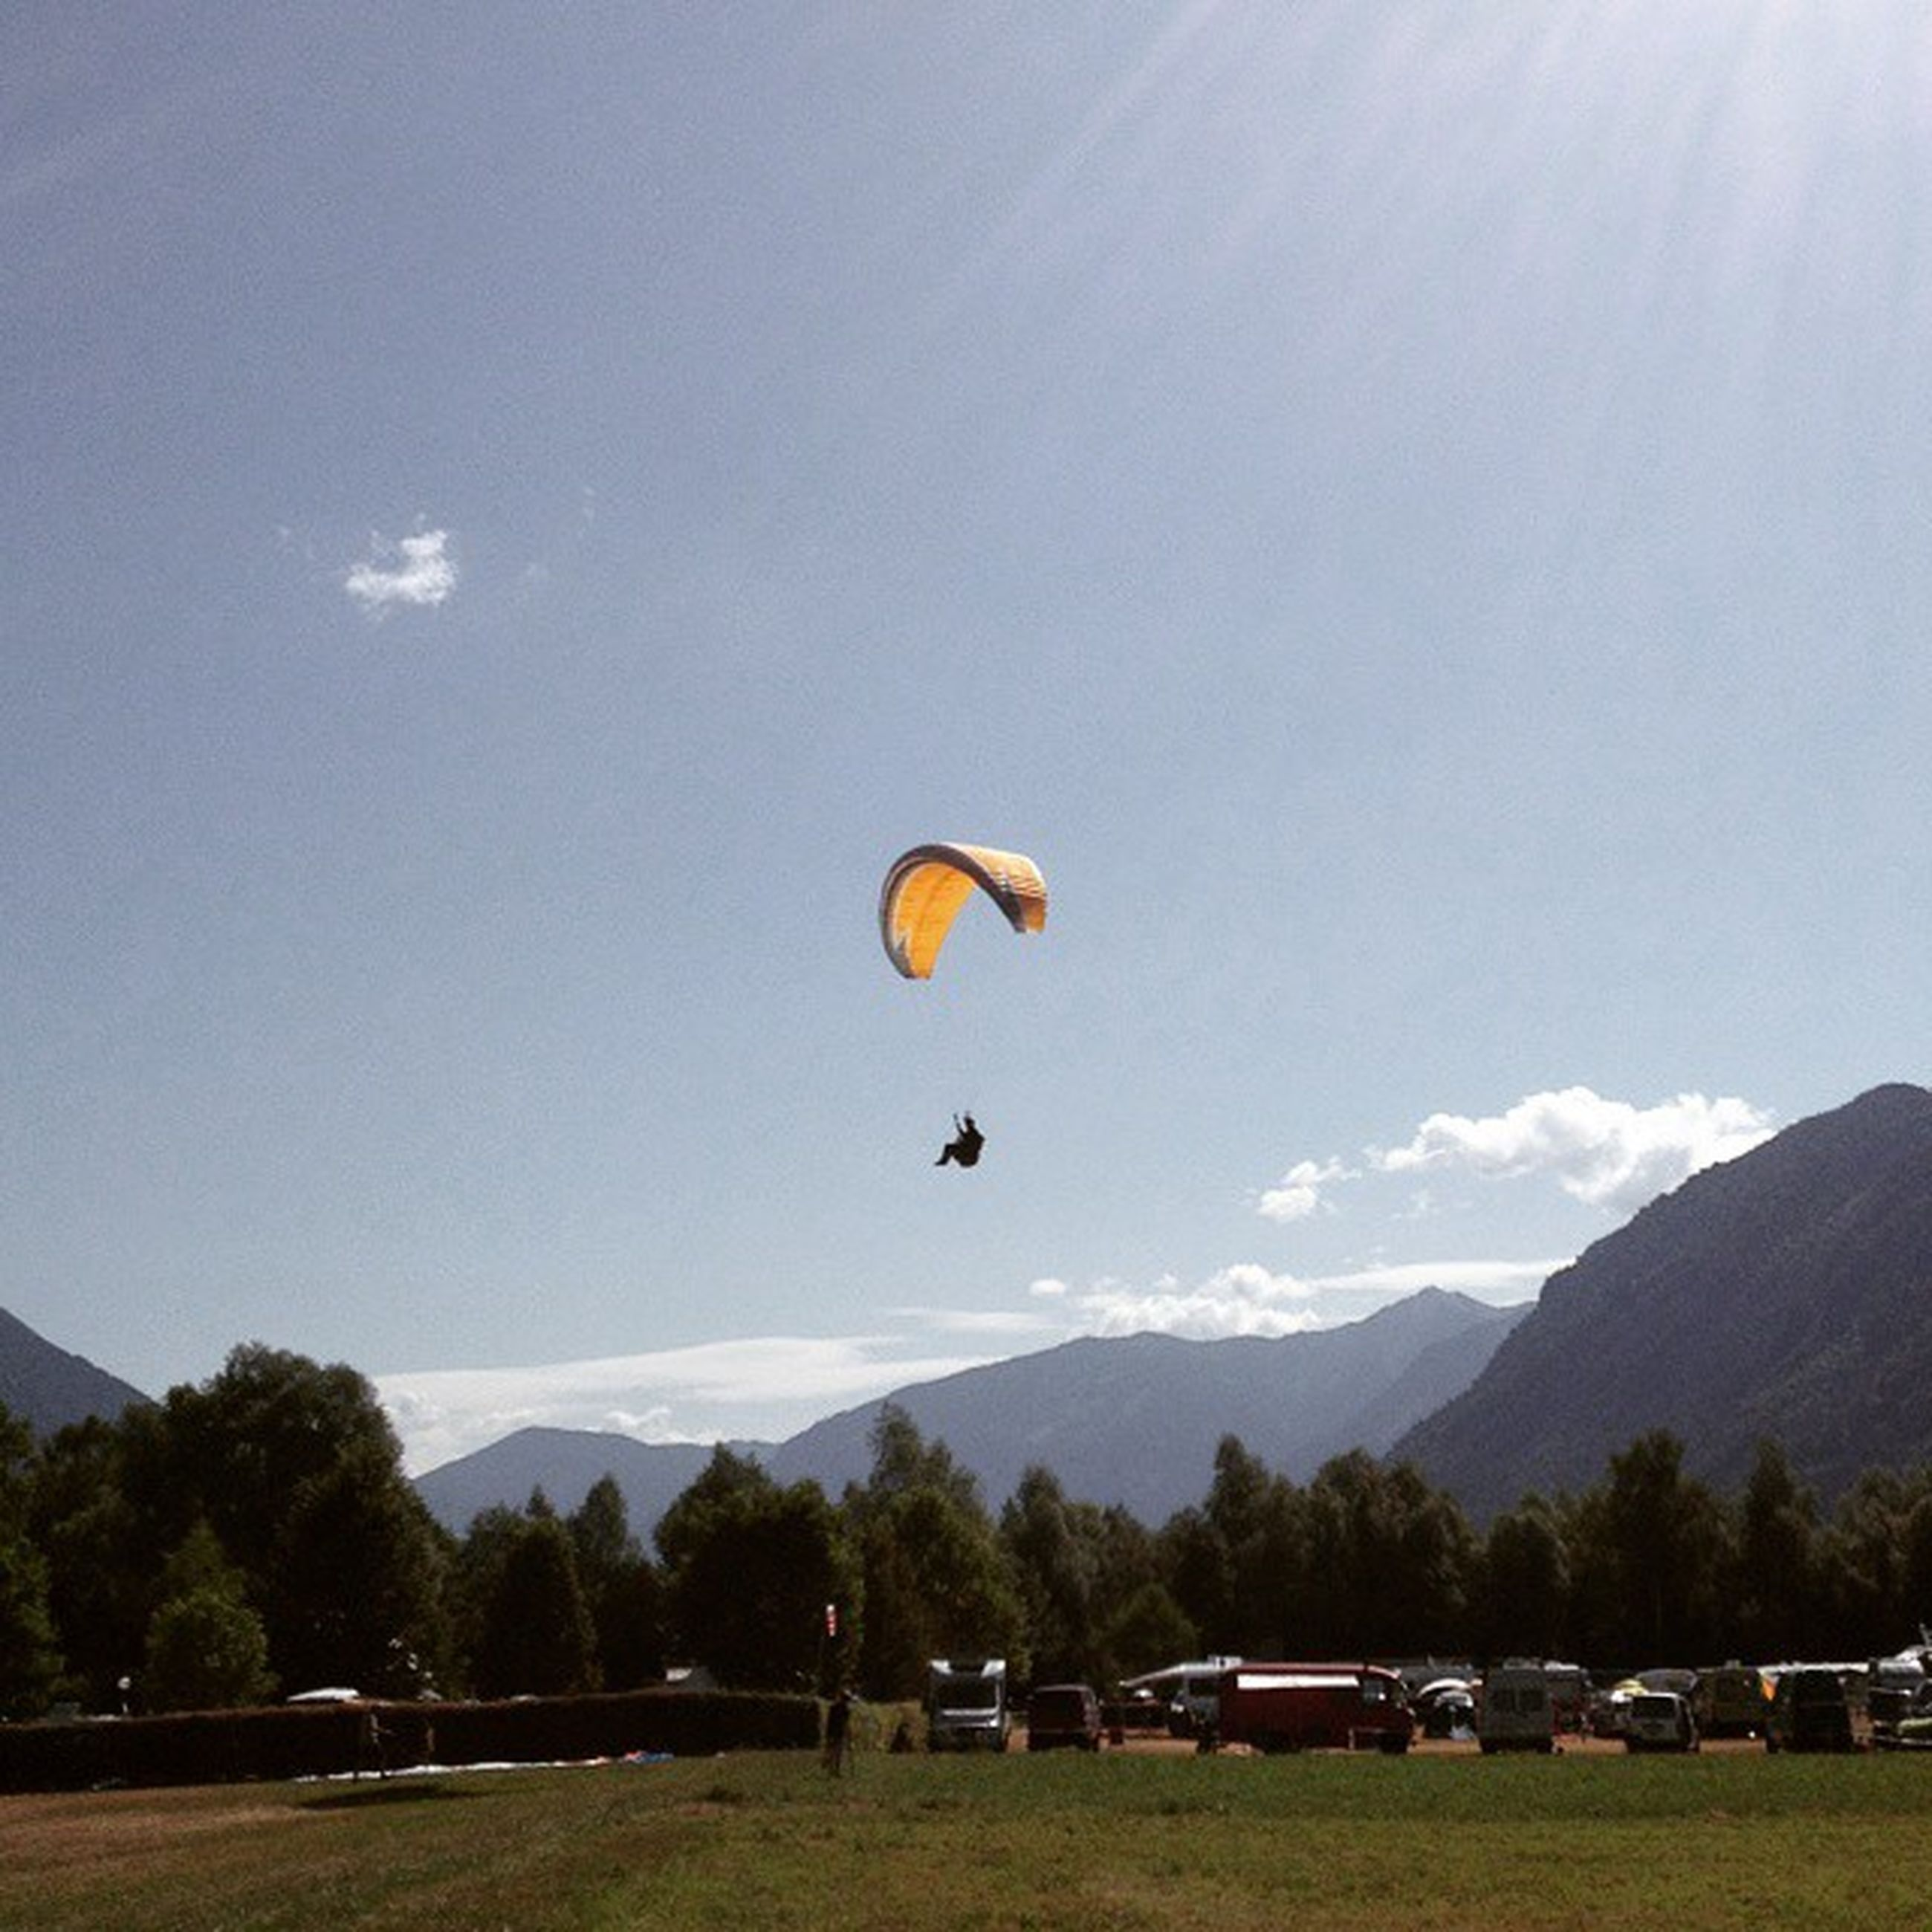 transportation, mid-air, flying, parachute, mountain, extreme sports, mode of transport, paragliding, adventure, sky, hot air balloon, landscape, leisure activity, sport, mountain range, air vehicle, travel, on the move, cloud - sky